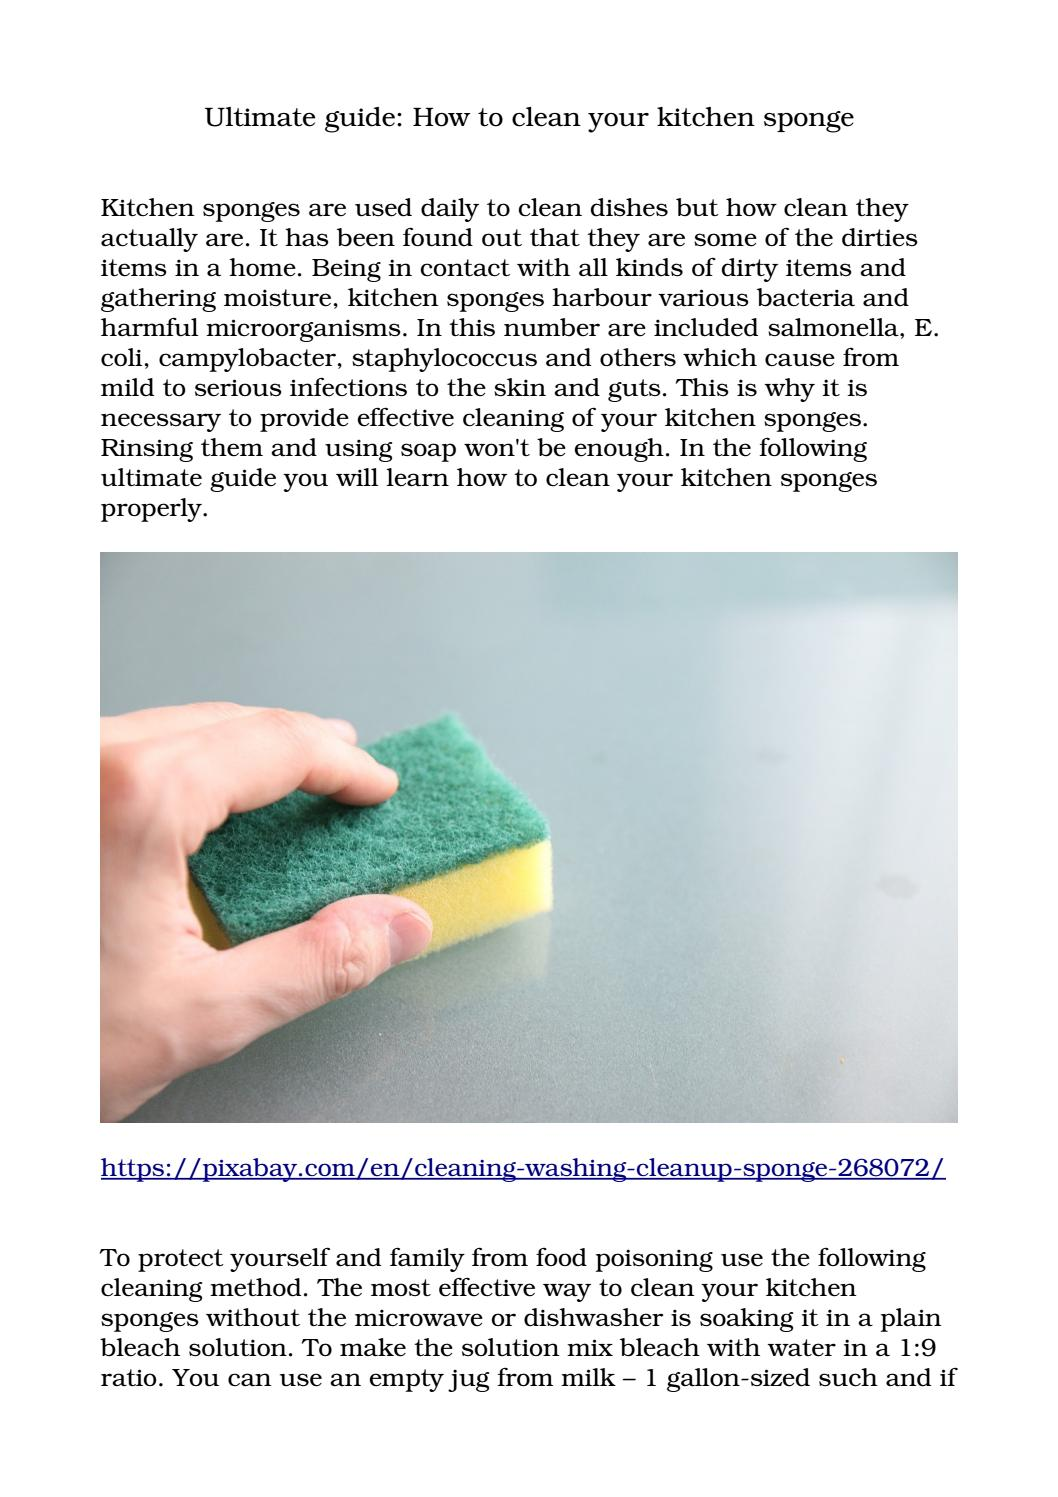 Ultimate Guide How To Clean Your Kitchen Sponge By Best Cleaners Kentish Town Issuu,Where Is Diana Buried